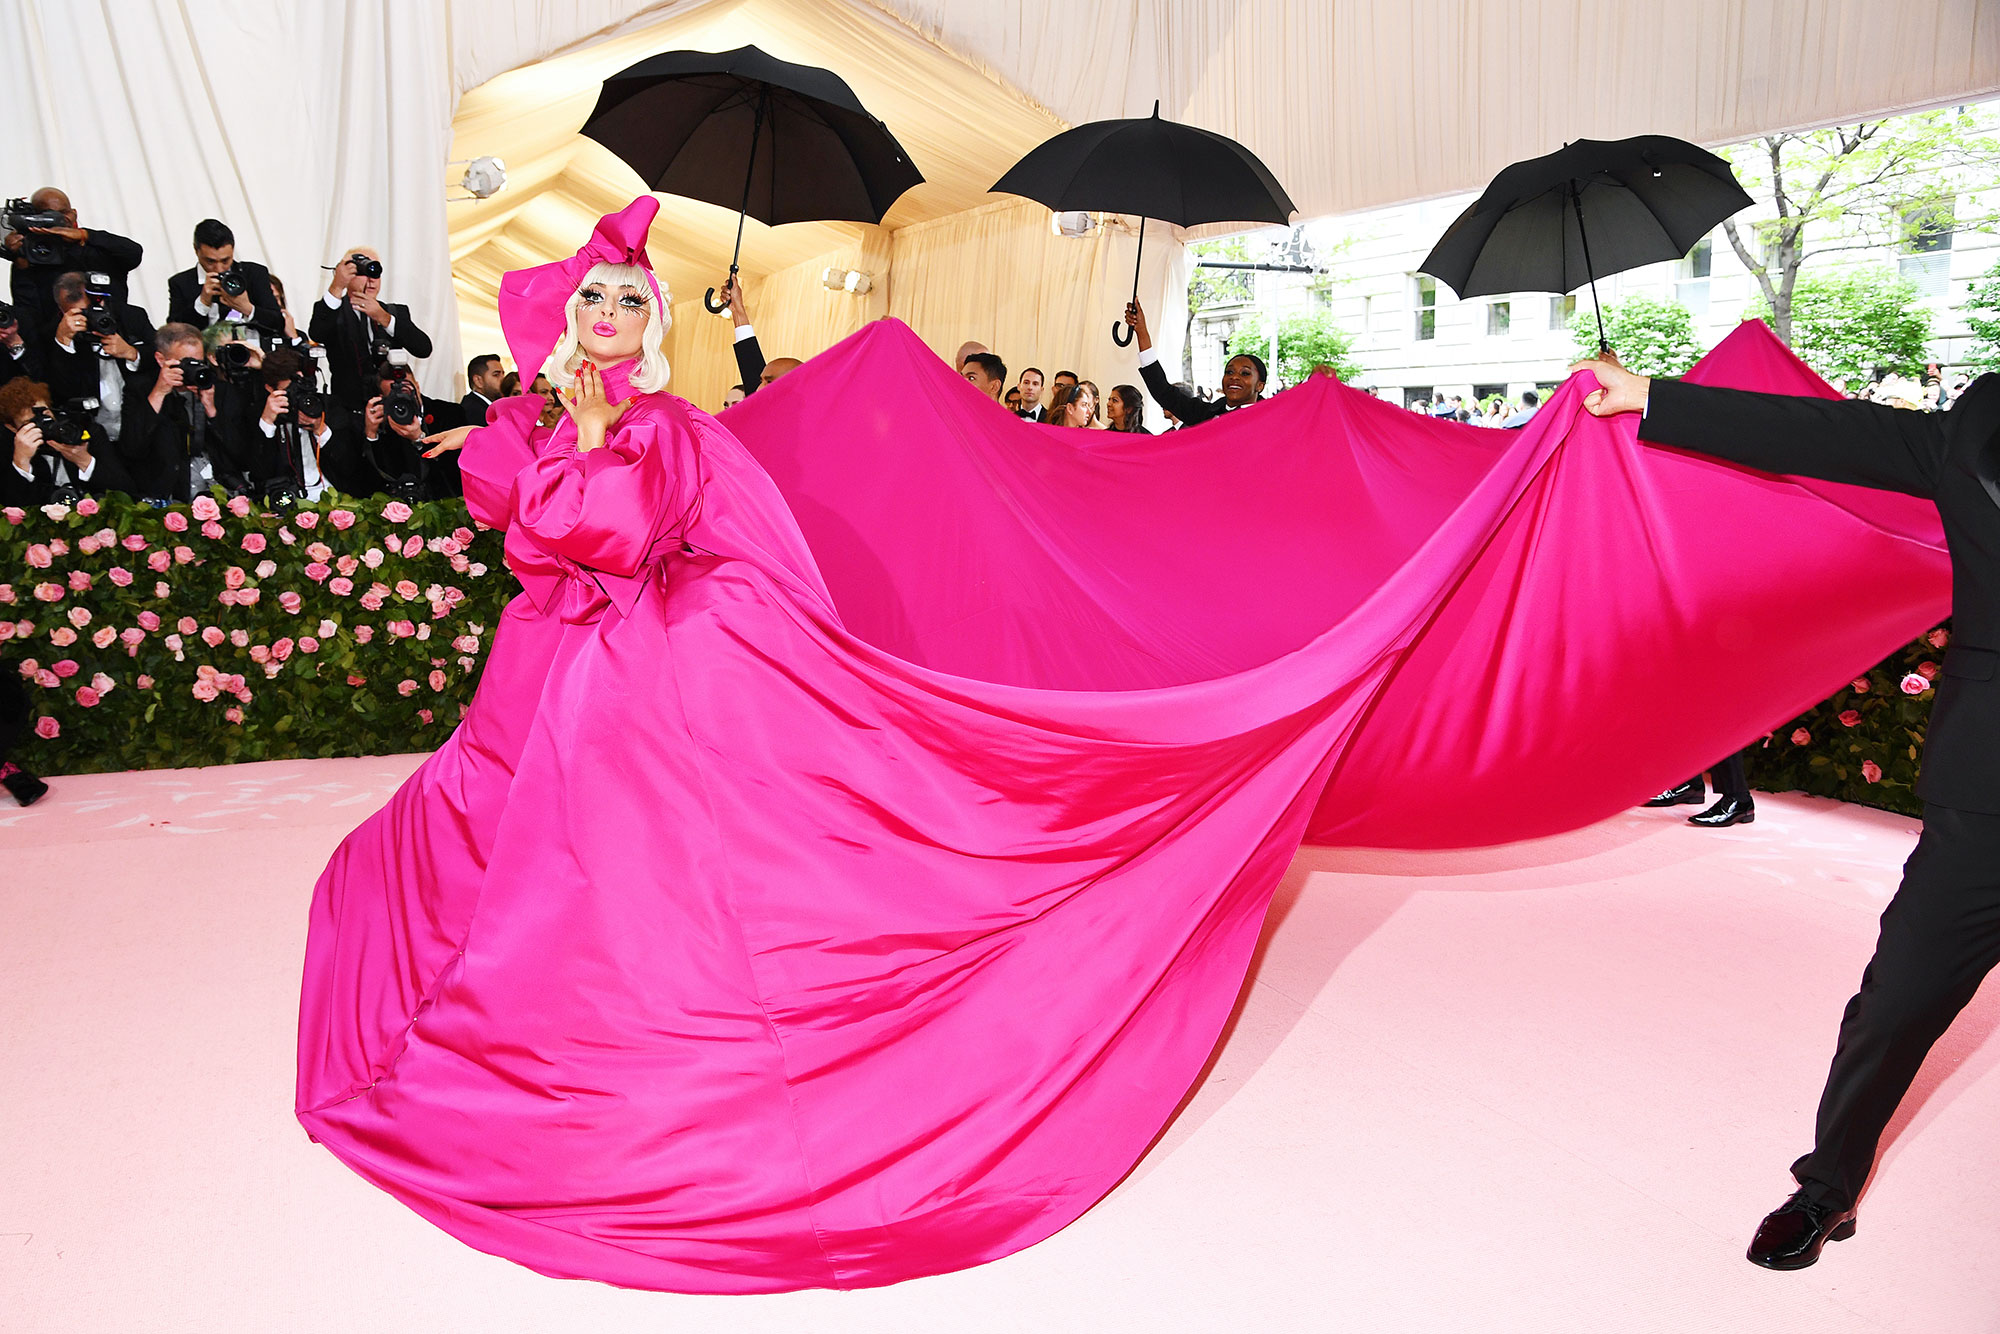 Met Gala 2019 Red Carpet Fashion: See Celeb Dresses, Gowns